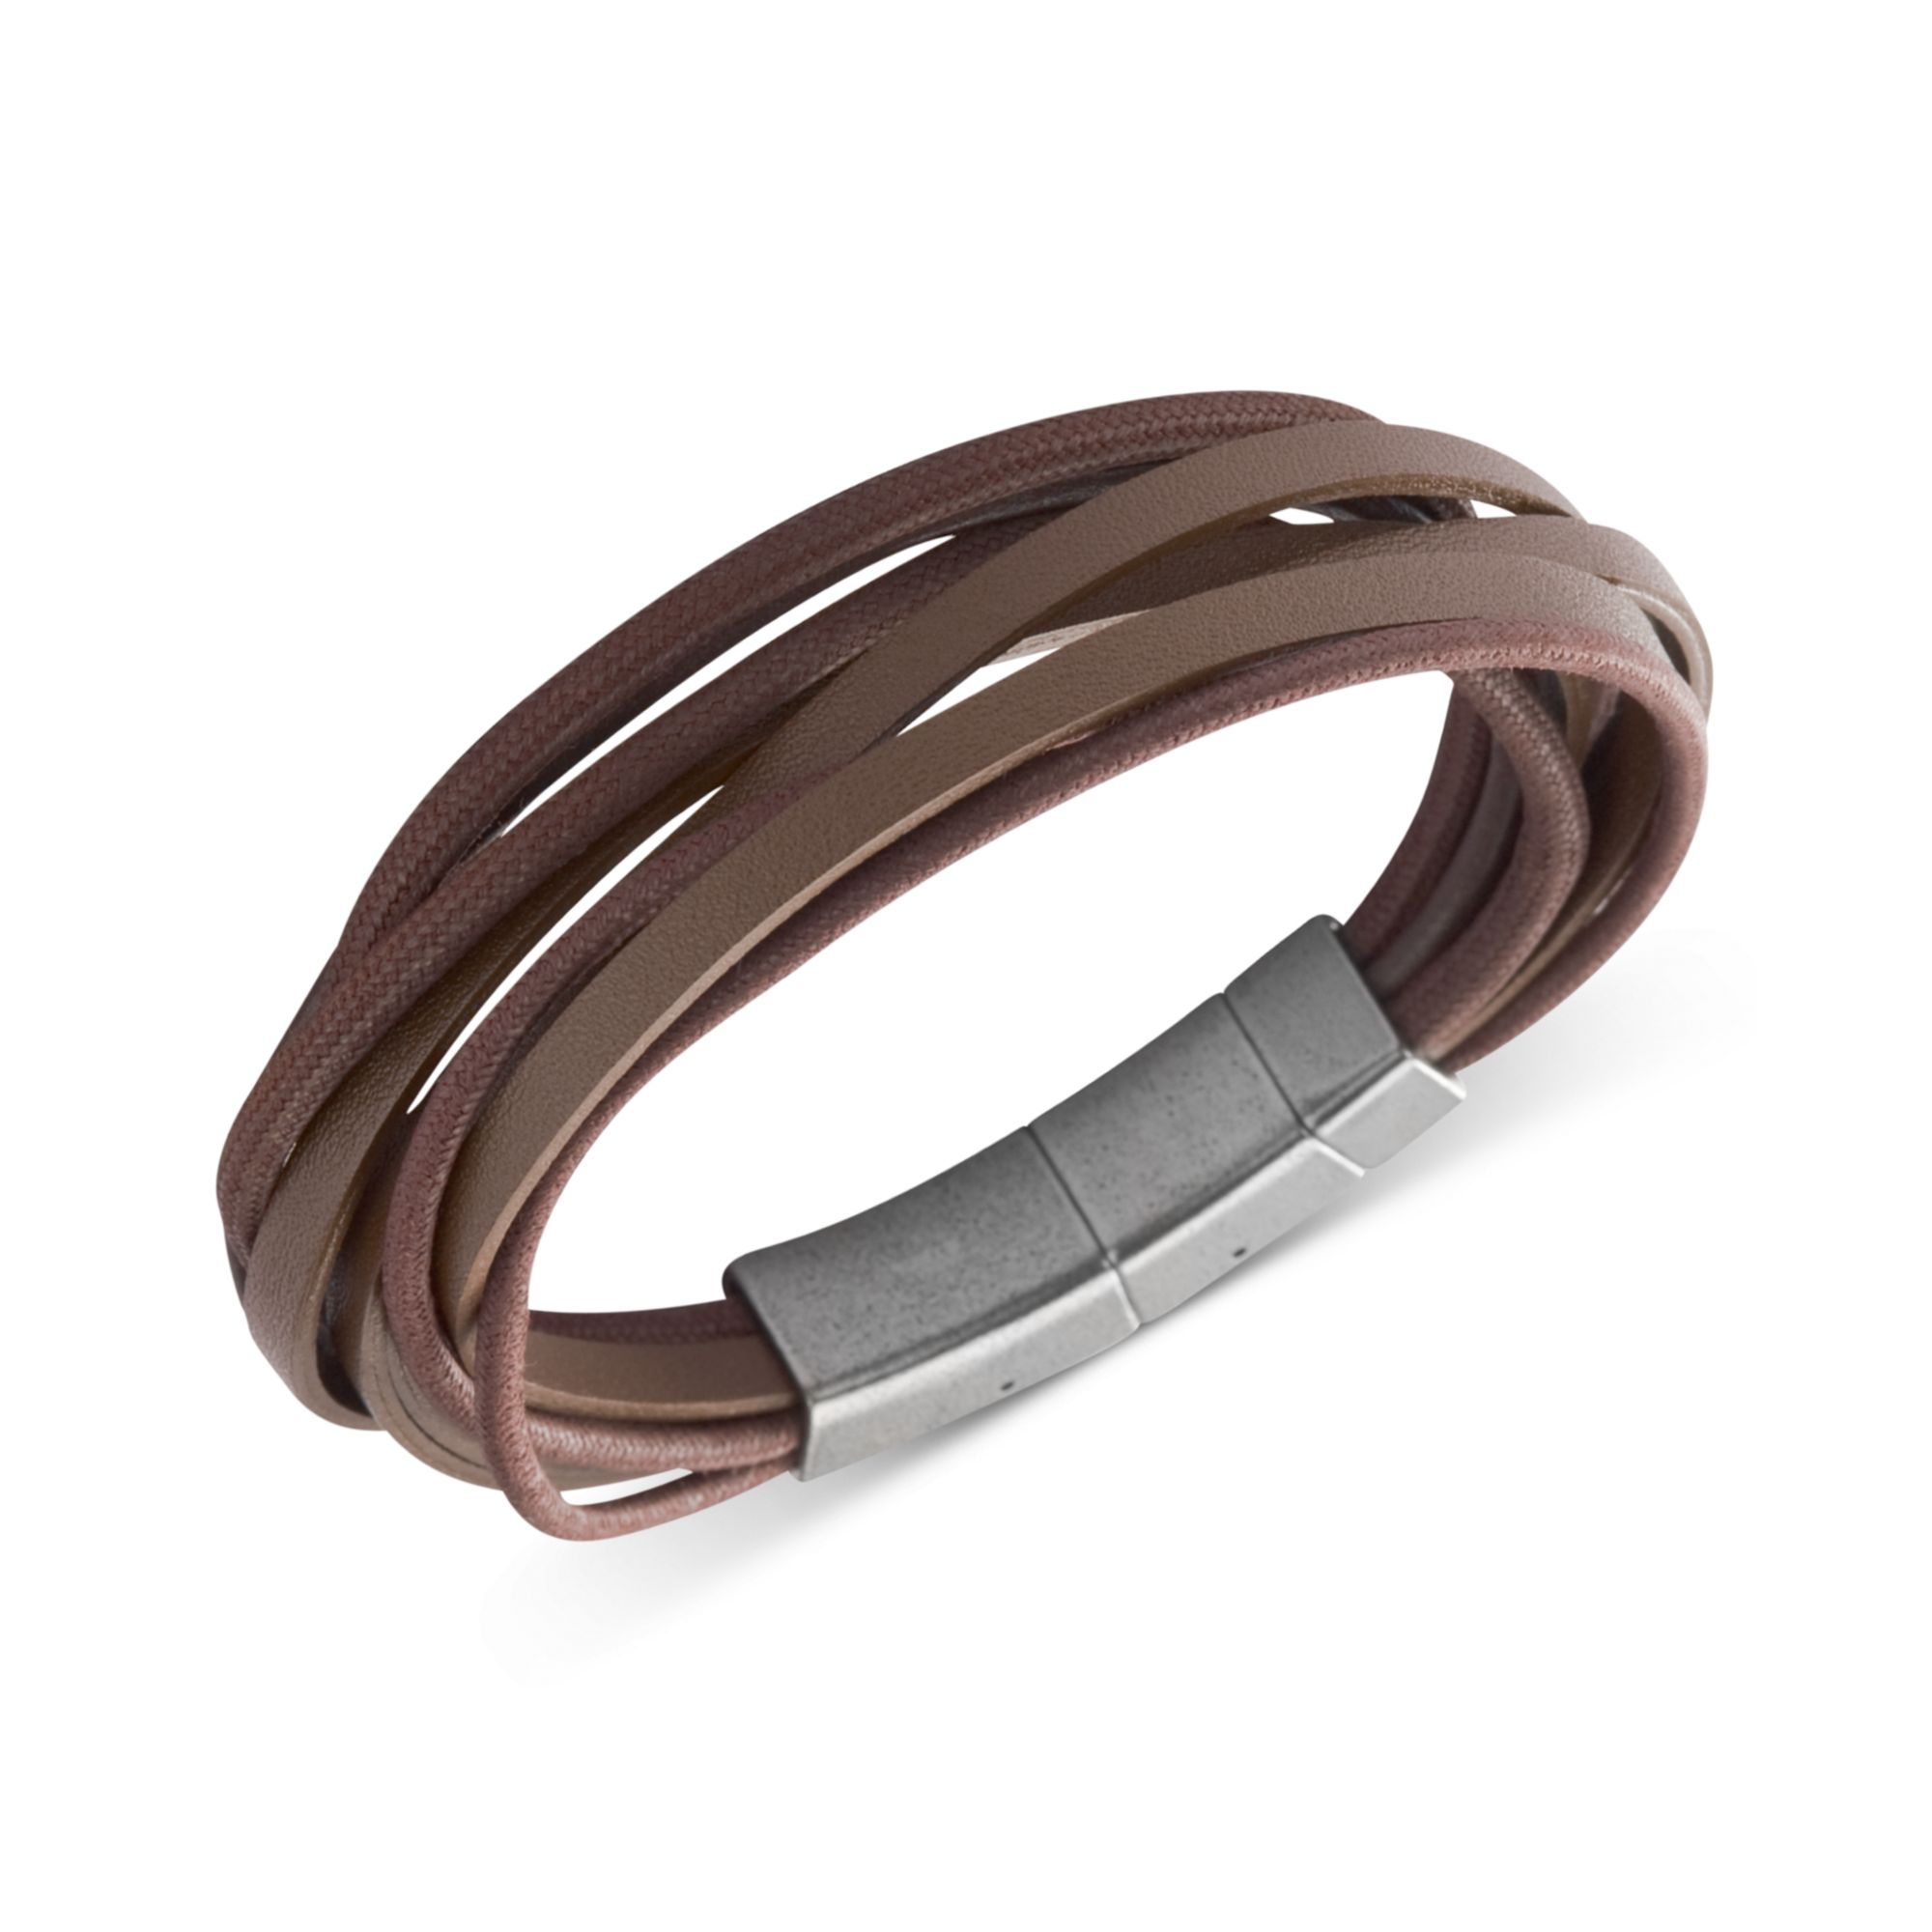 1cbc2c269 Fossil Stainless Steel Brown Leather Multistrand Wrap Bracelet in ...